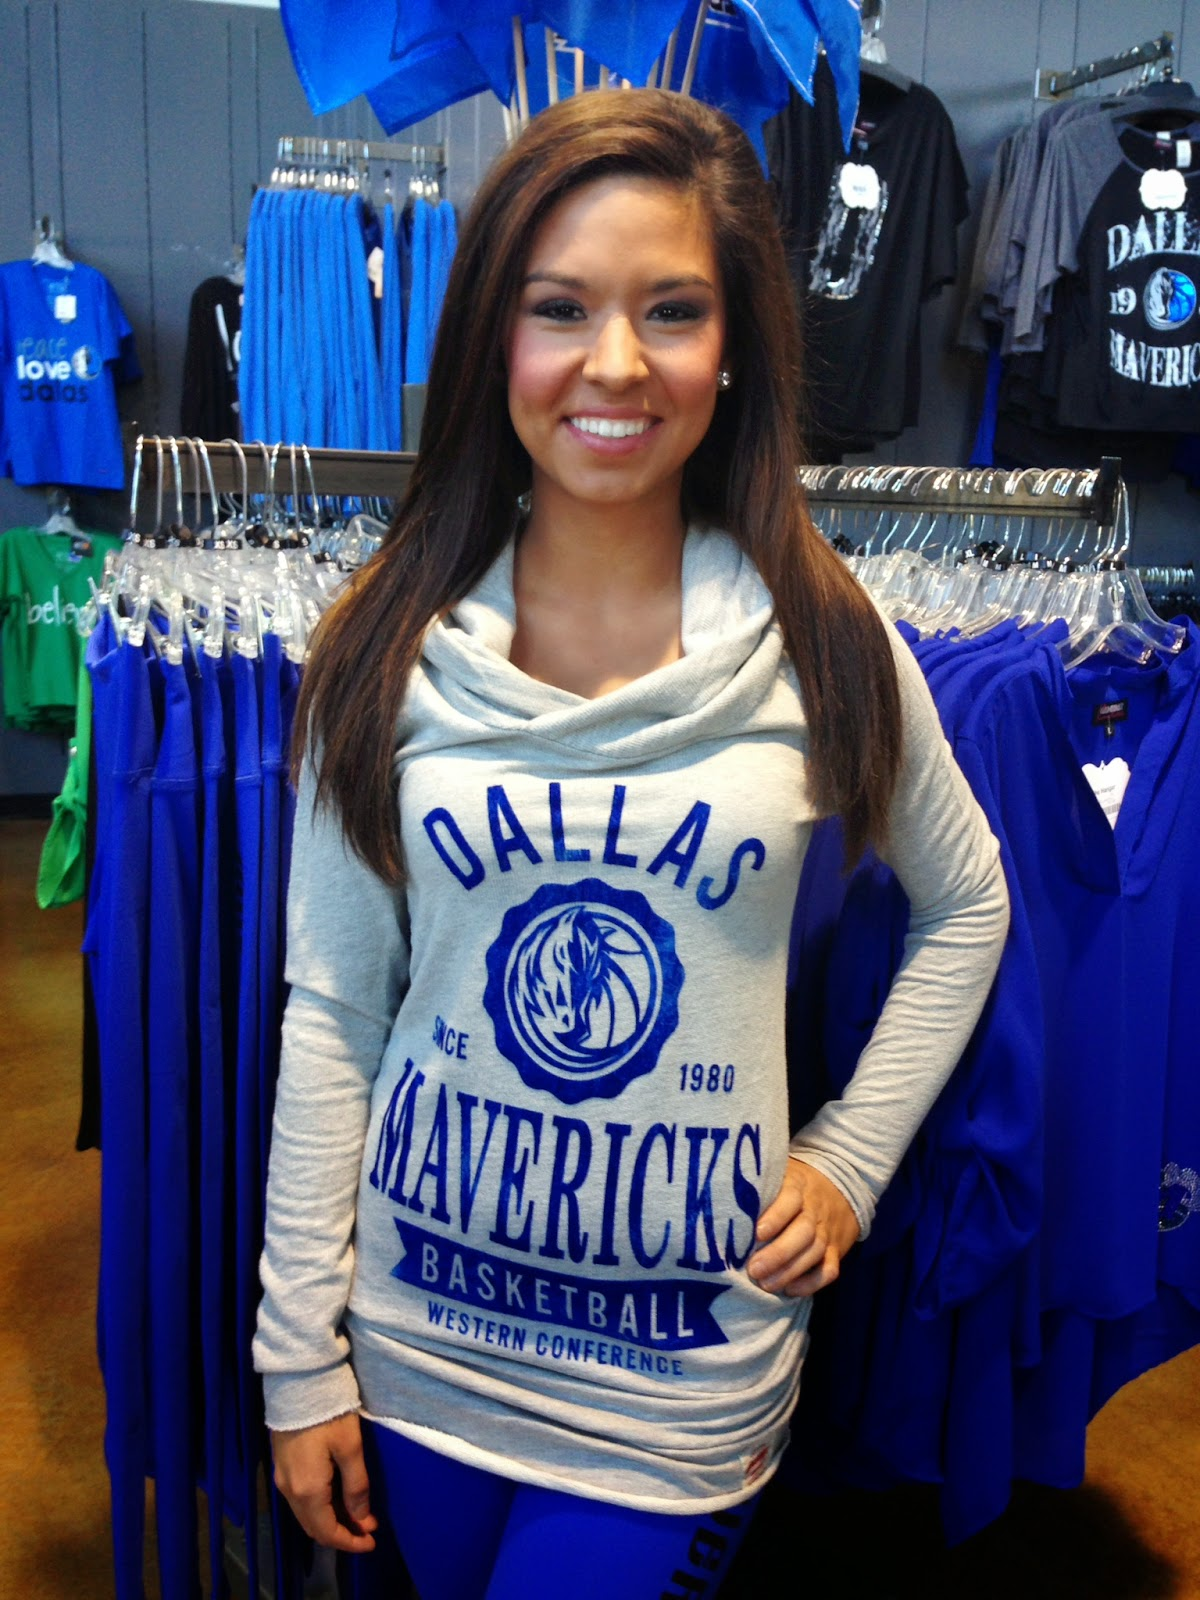 Dallas Mavericks women's turtleneck, dallas mavericks women's clothing